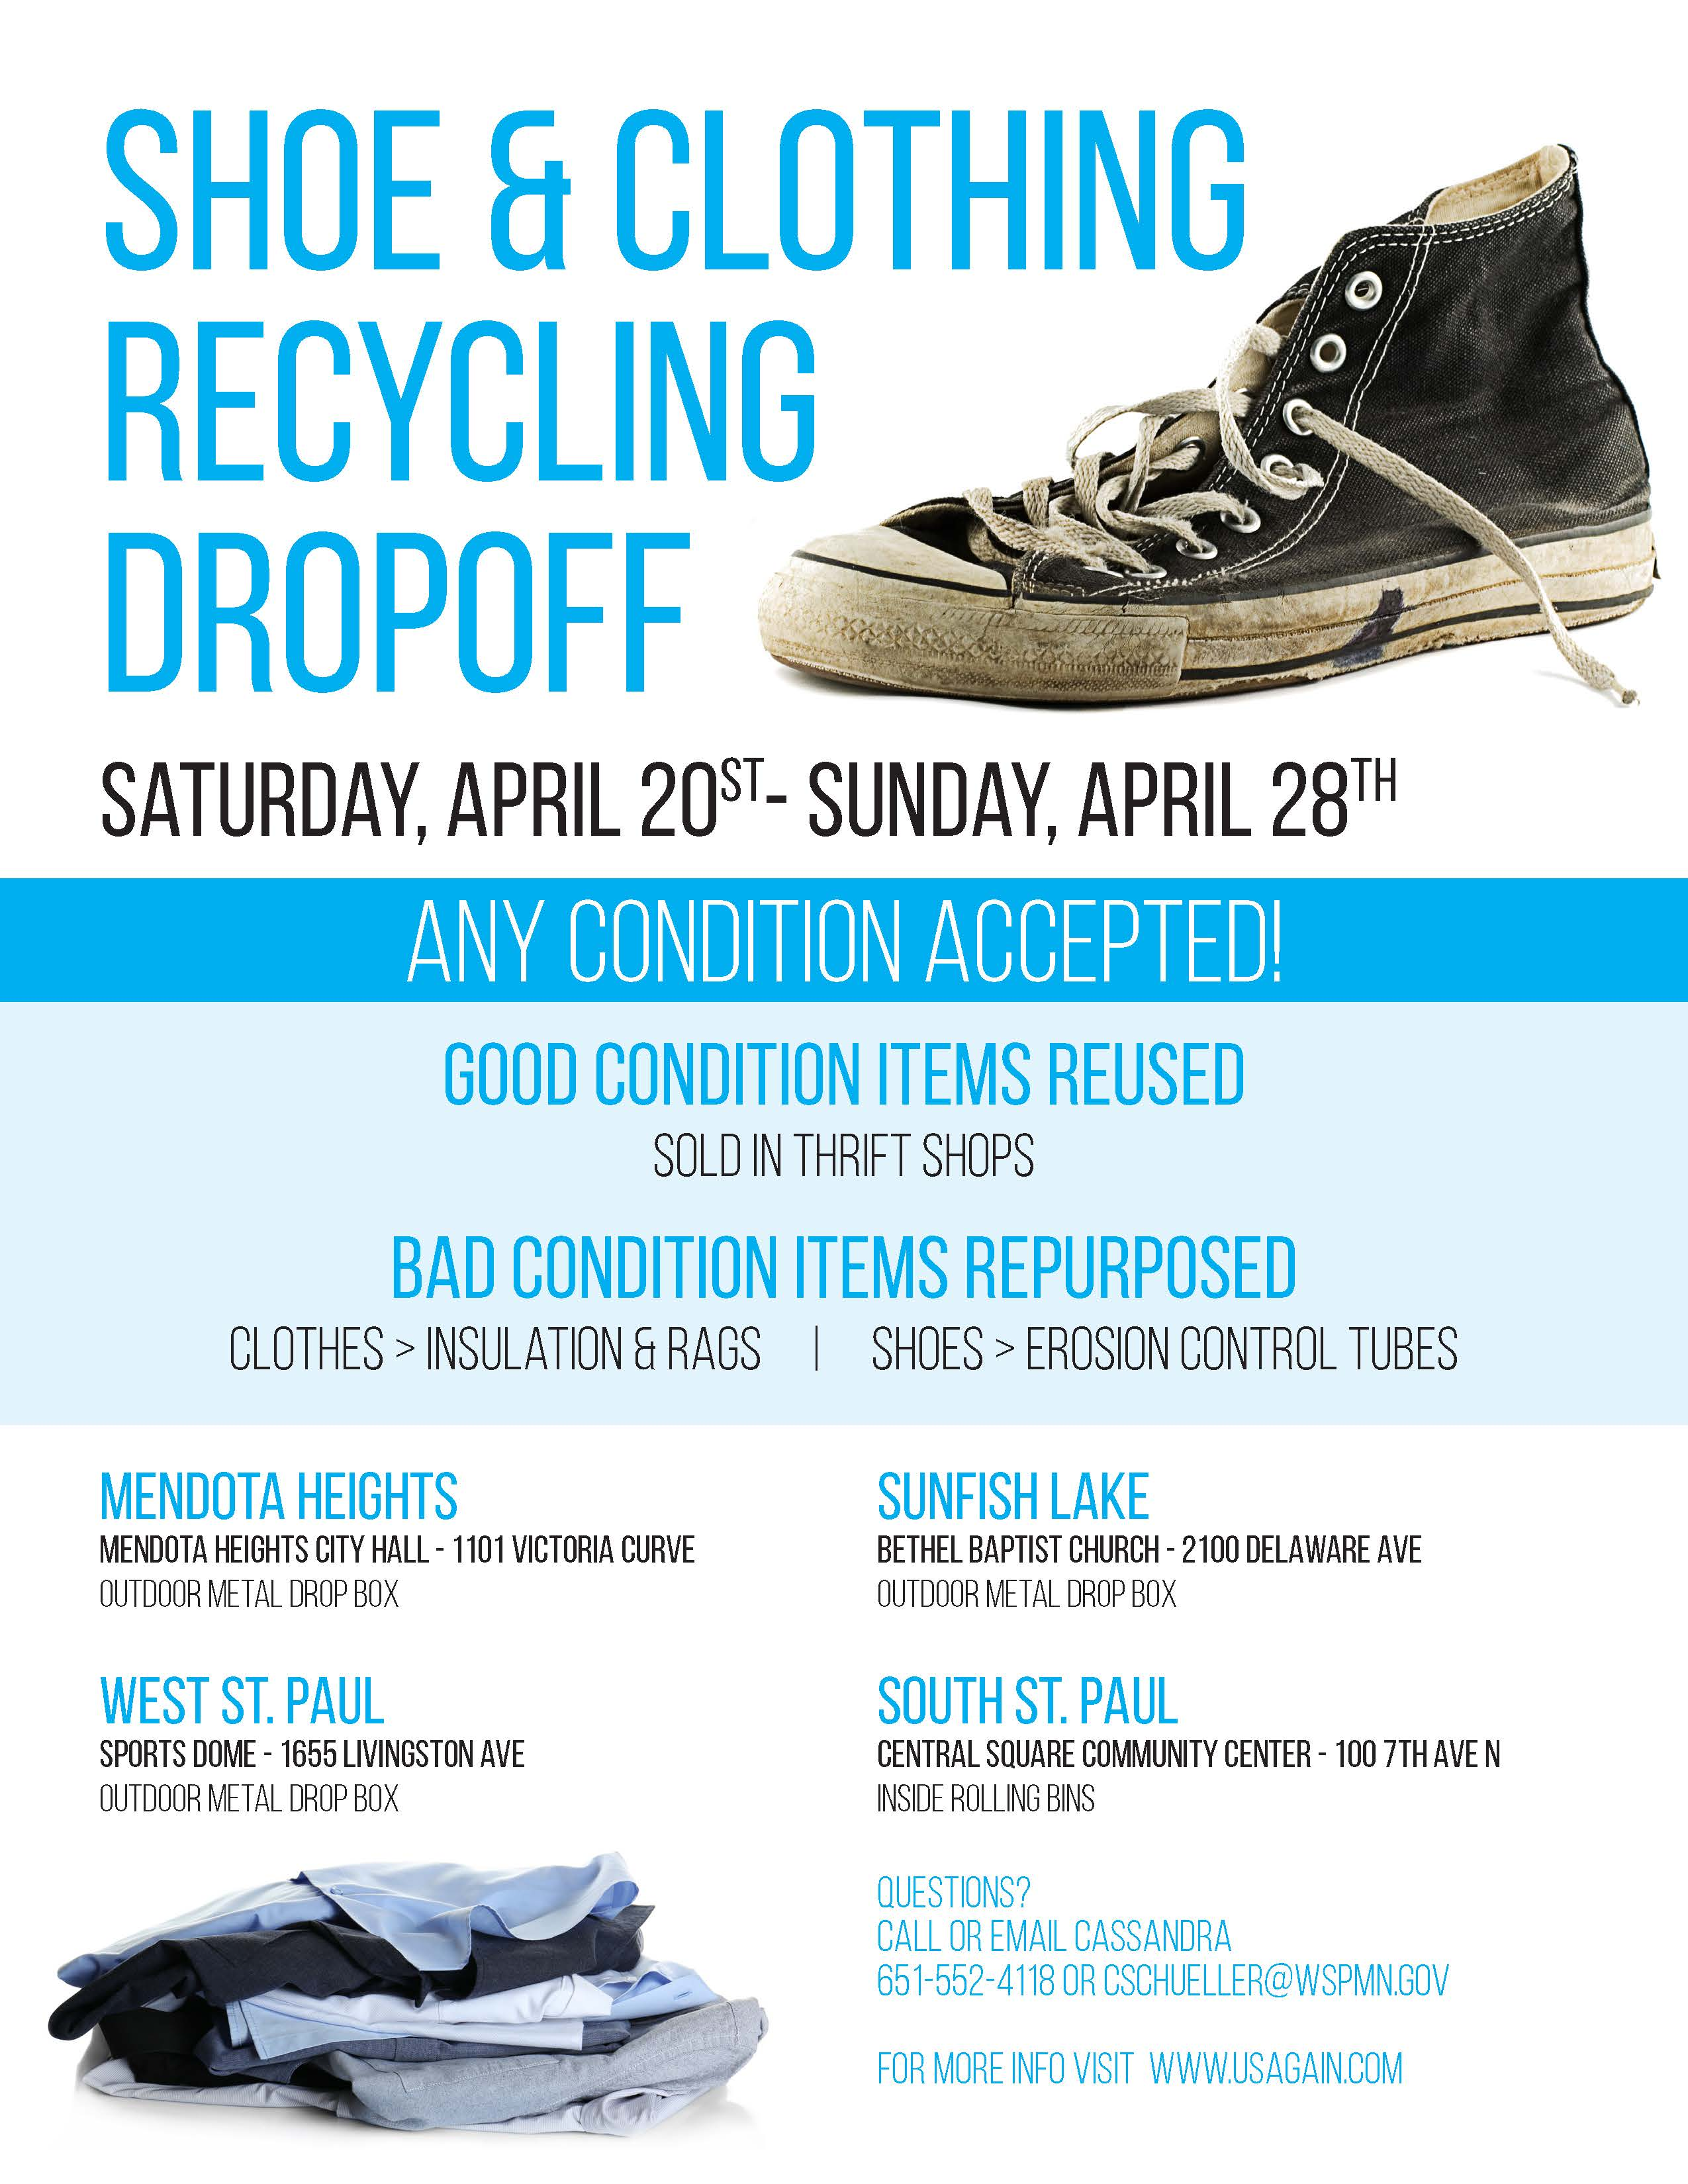 Shoe and Clothing Recycling Dropoff 2019 Flyer picture